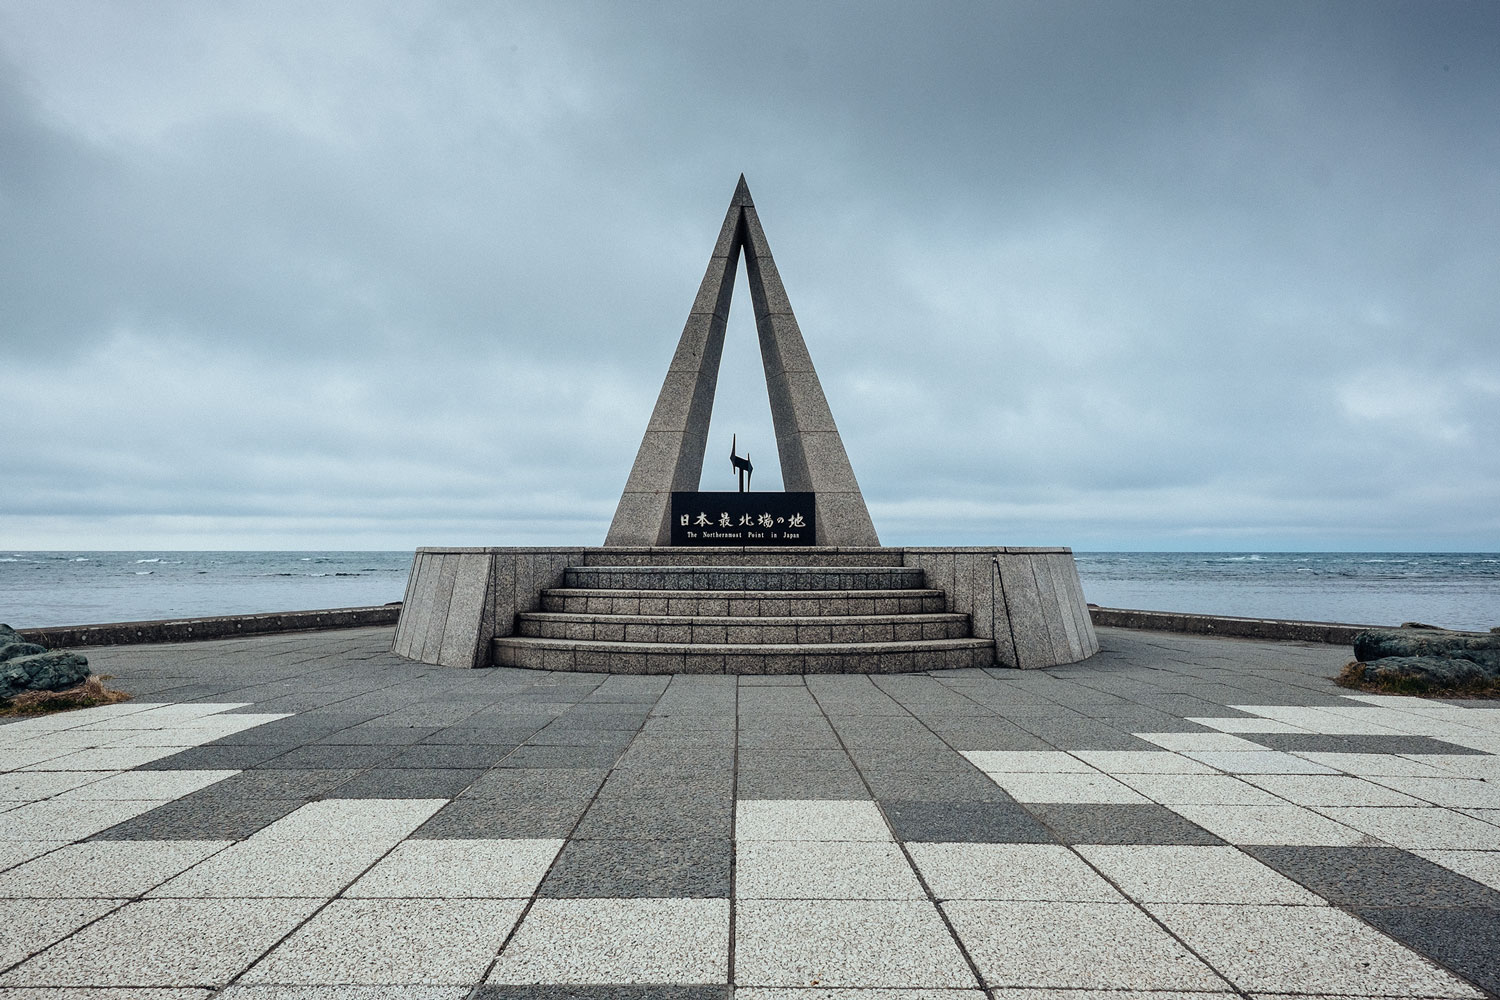 The Northenrmost point of Japan